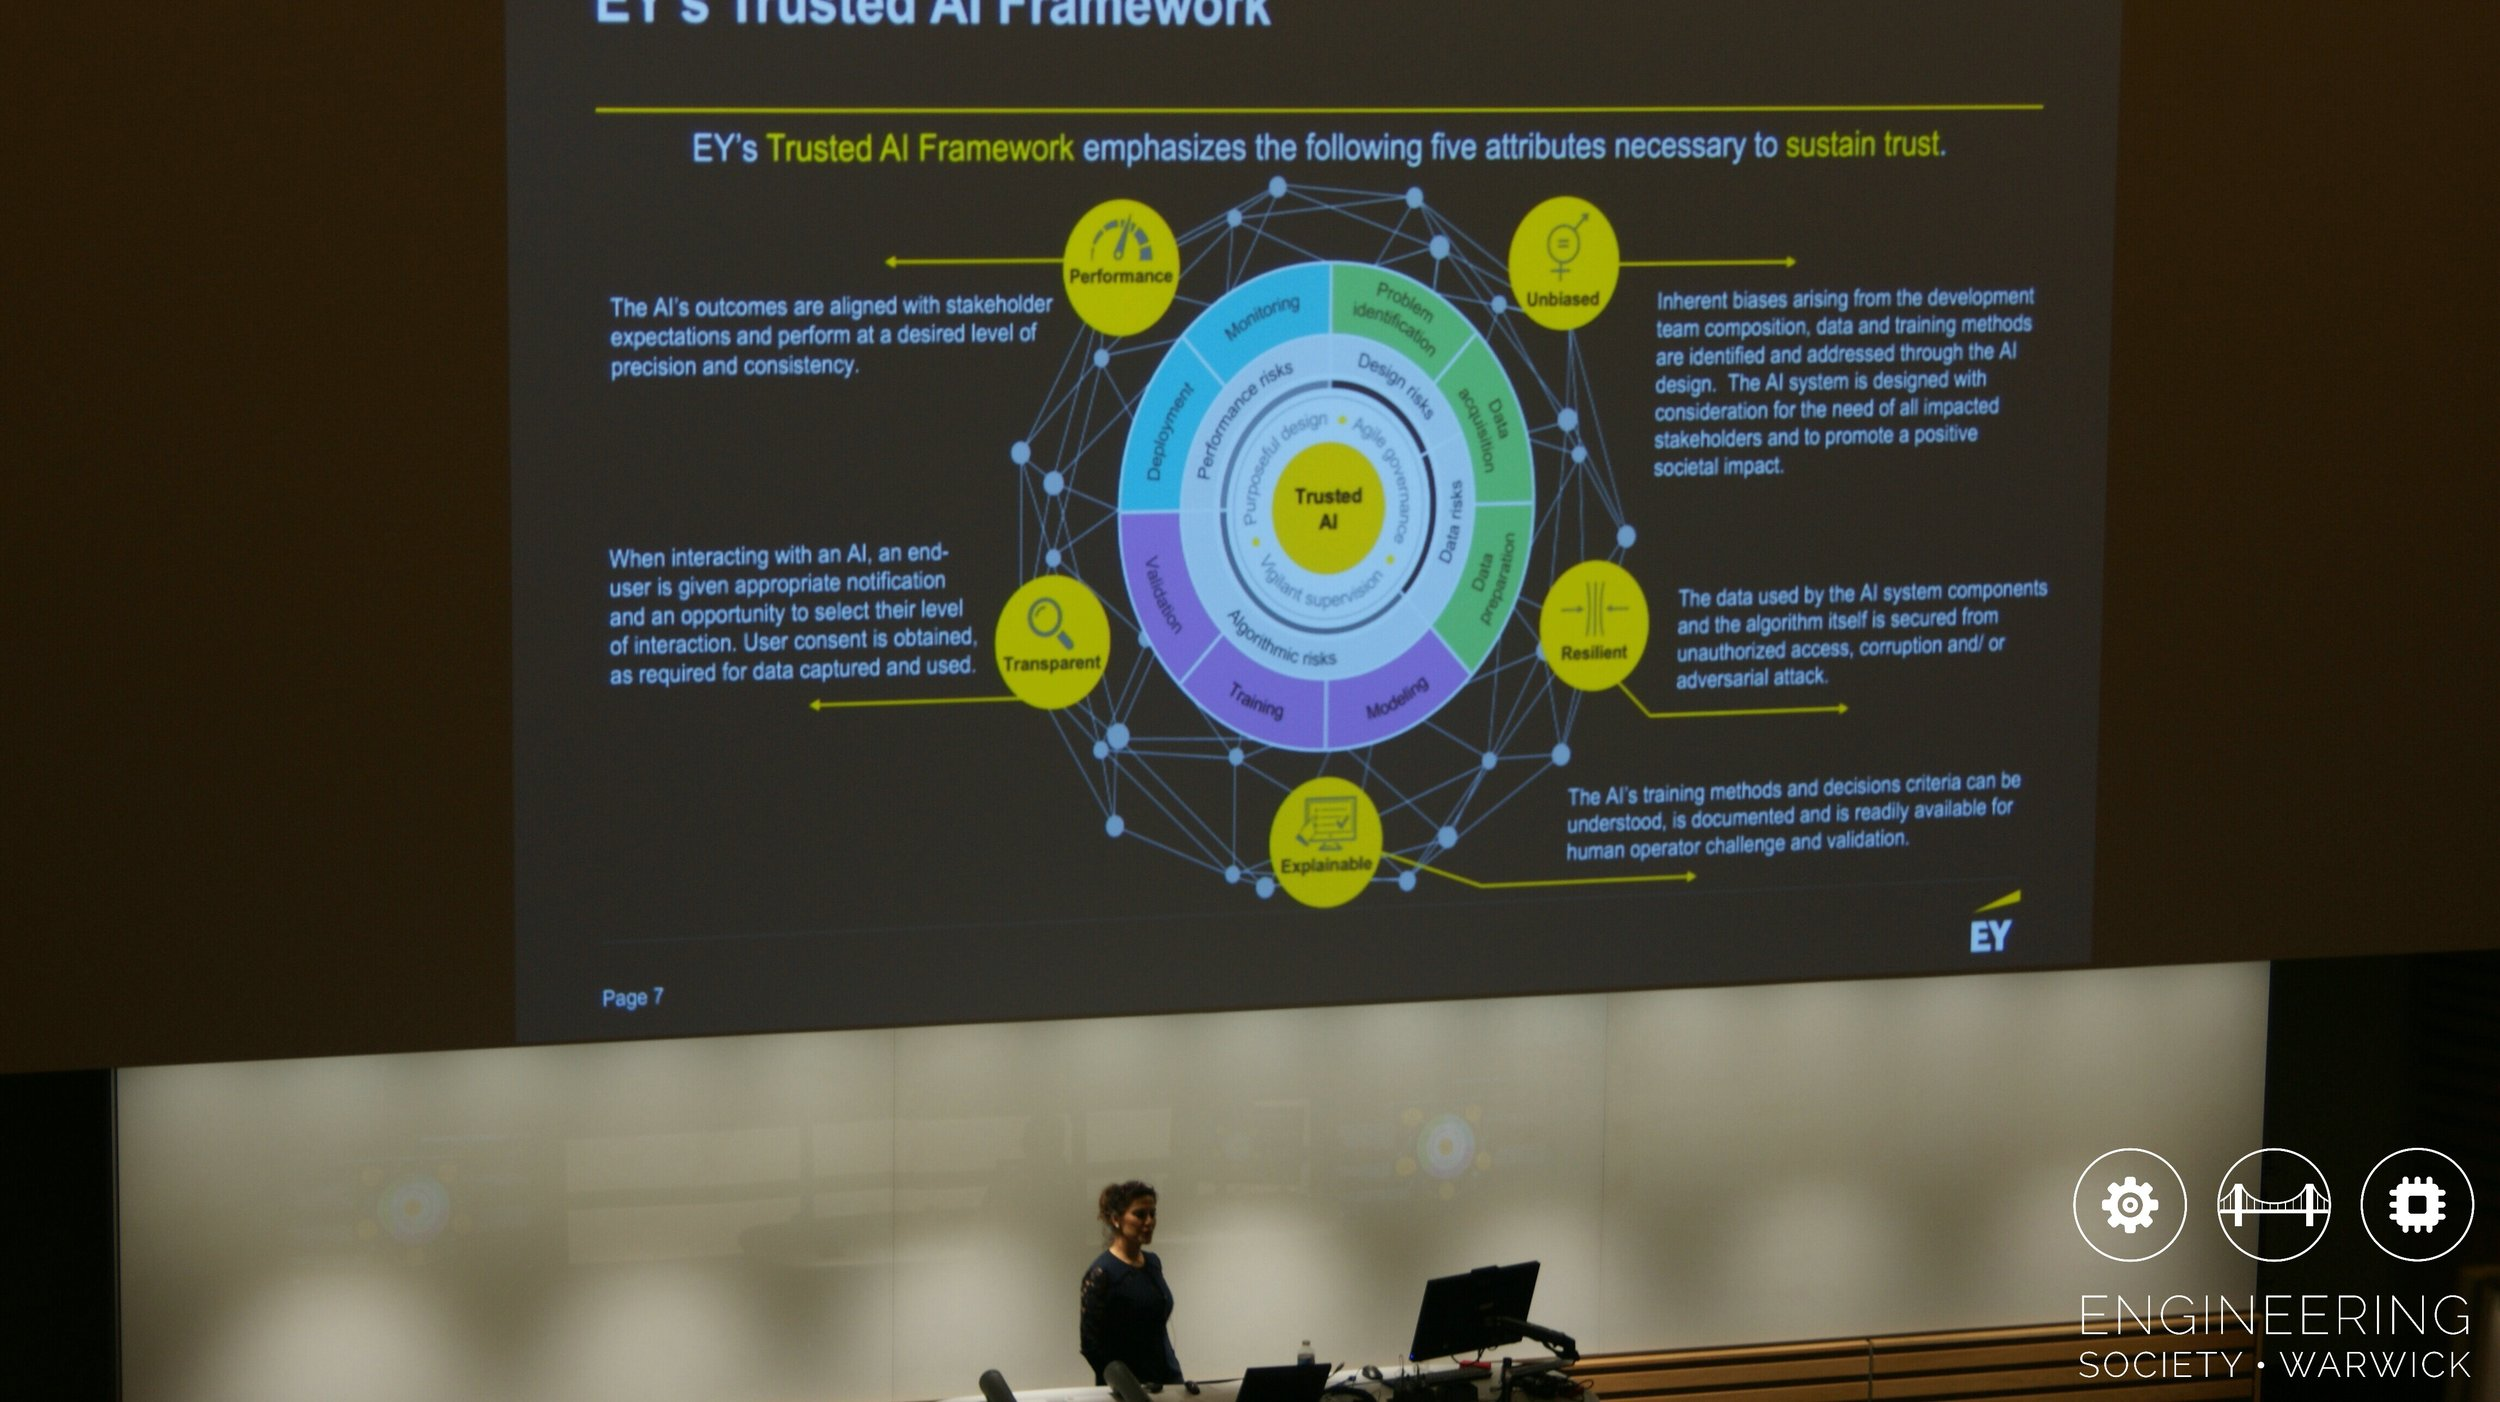 Sofia Ihsan (EY) discusses the concept of trust in artificial intelligence